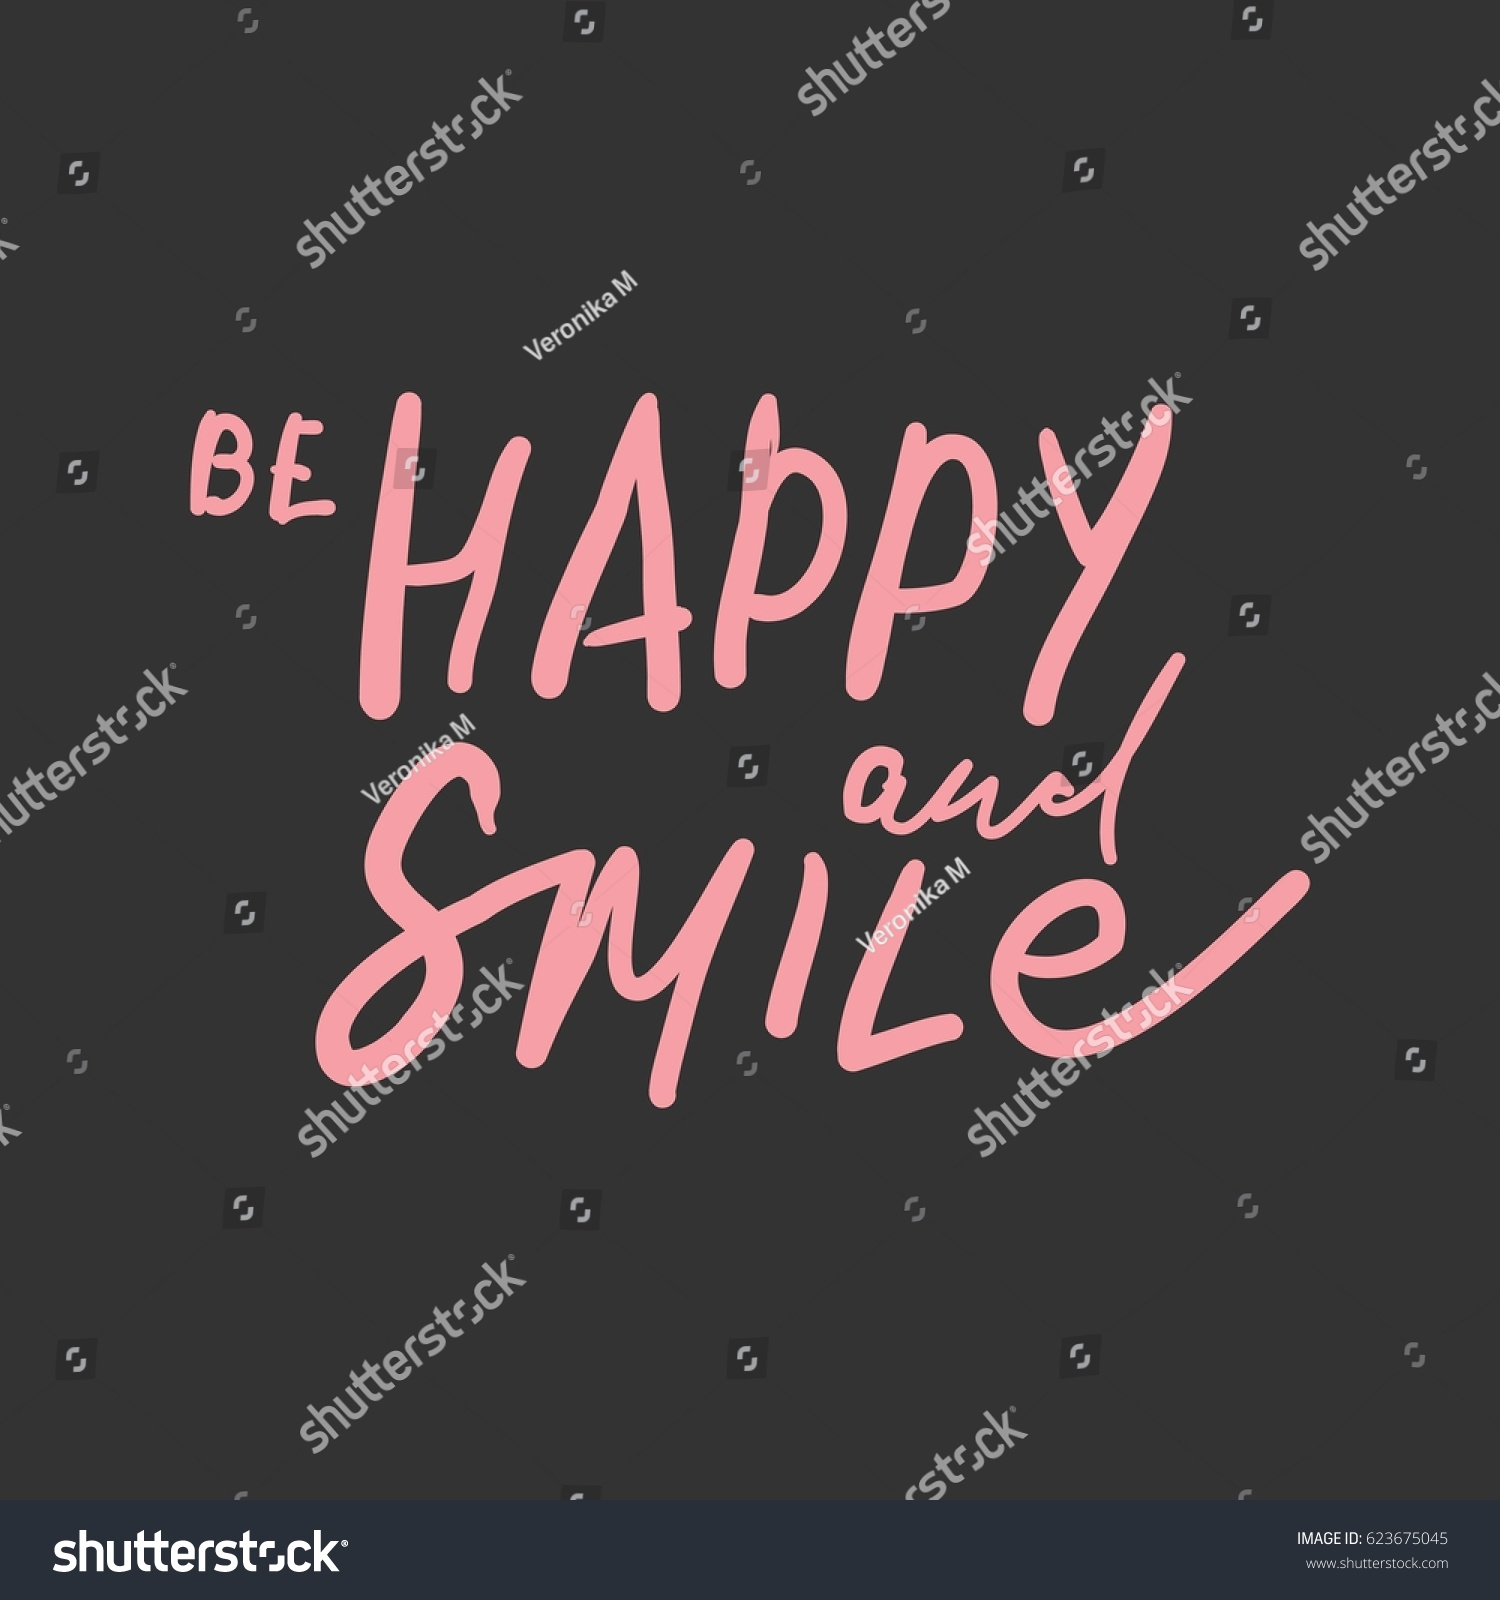 Quotes About Happiness Be Happy Smile Quotes About Happiness Stock Vector 623675045